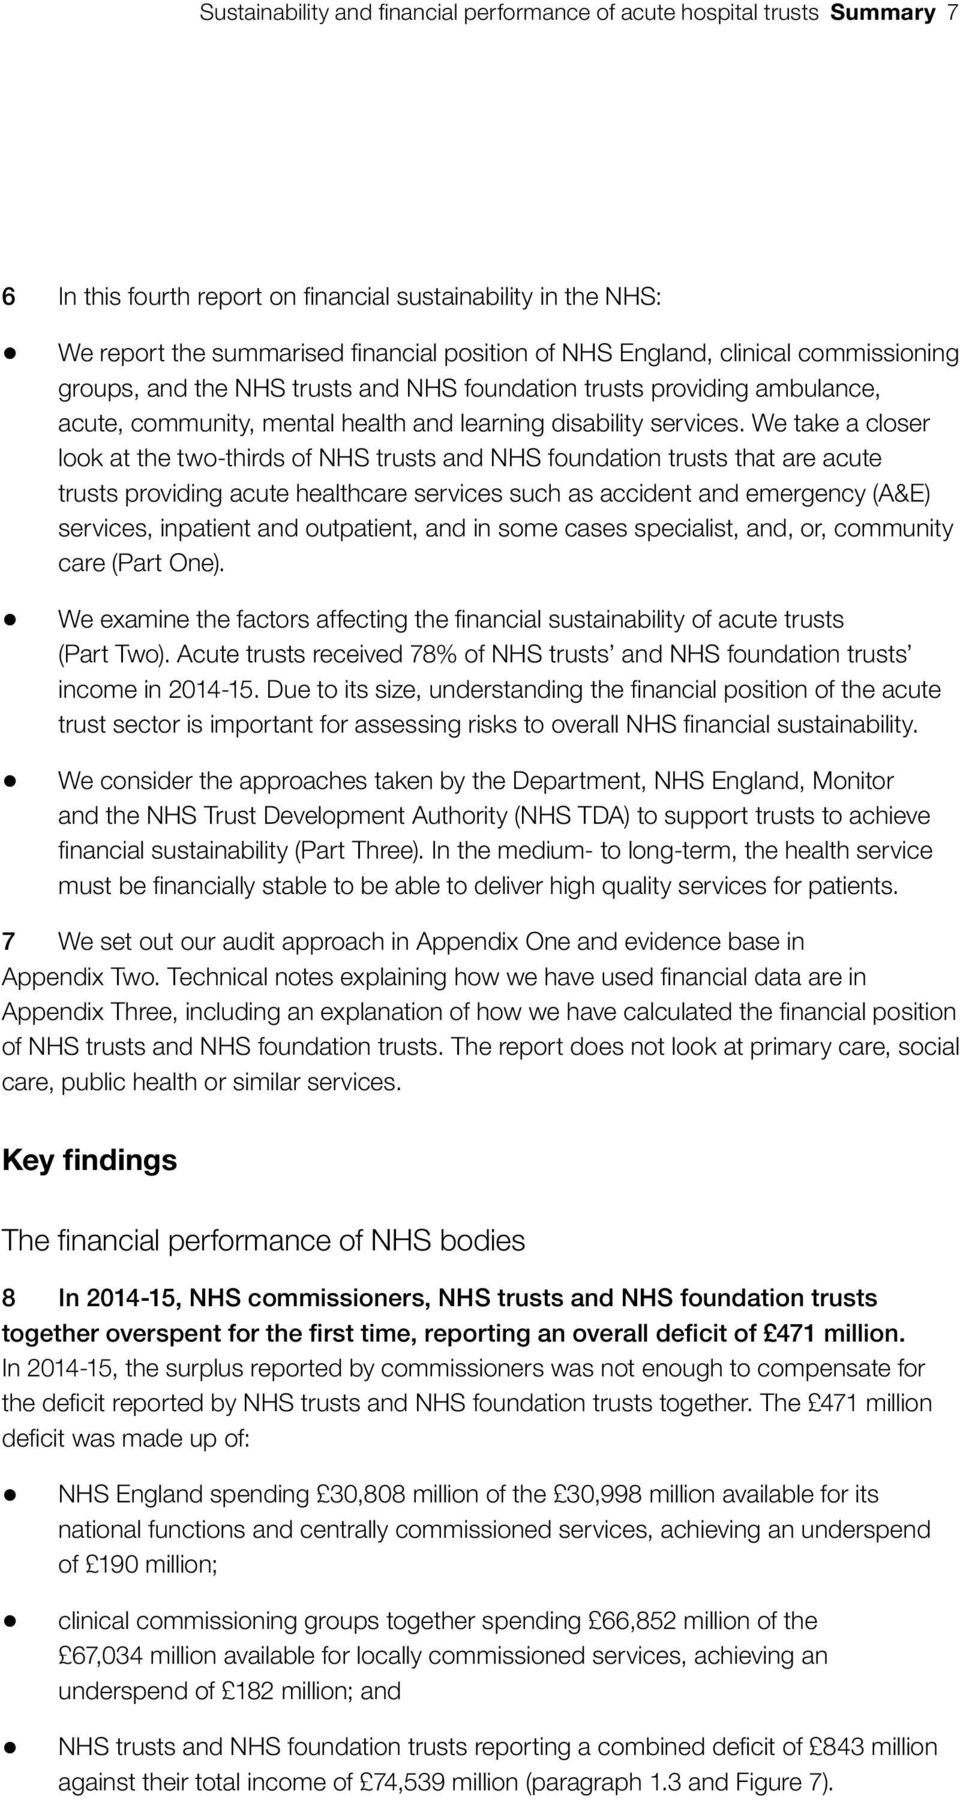 We take a closer look at the two-thirds of NHS trusts and NHS foundation trusts that are acute trusts providing acute healthcare services such as accident and emergency (A&E) services, inpatient and